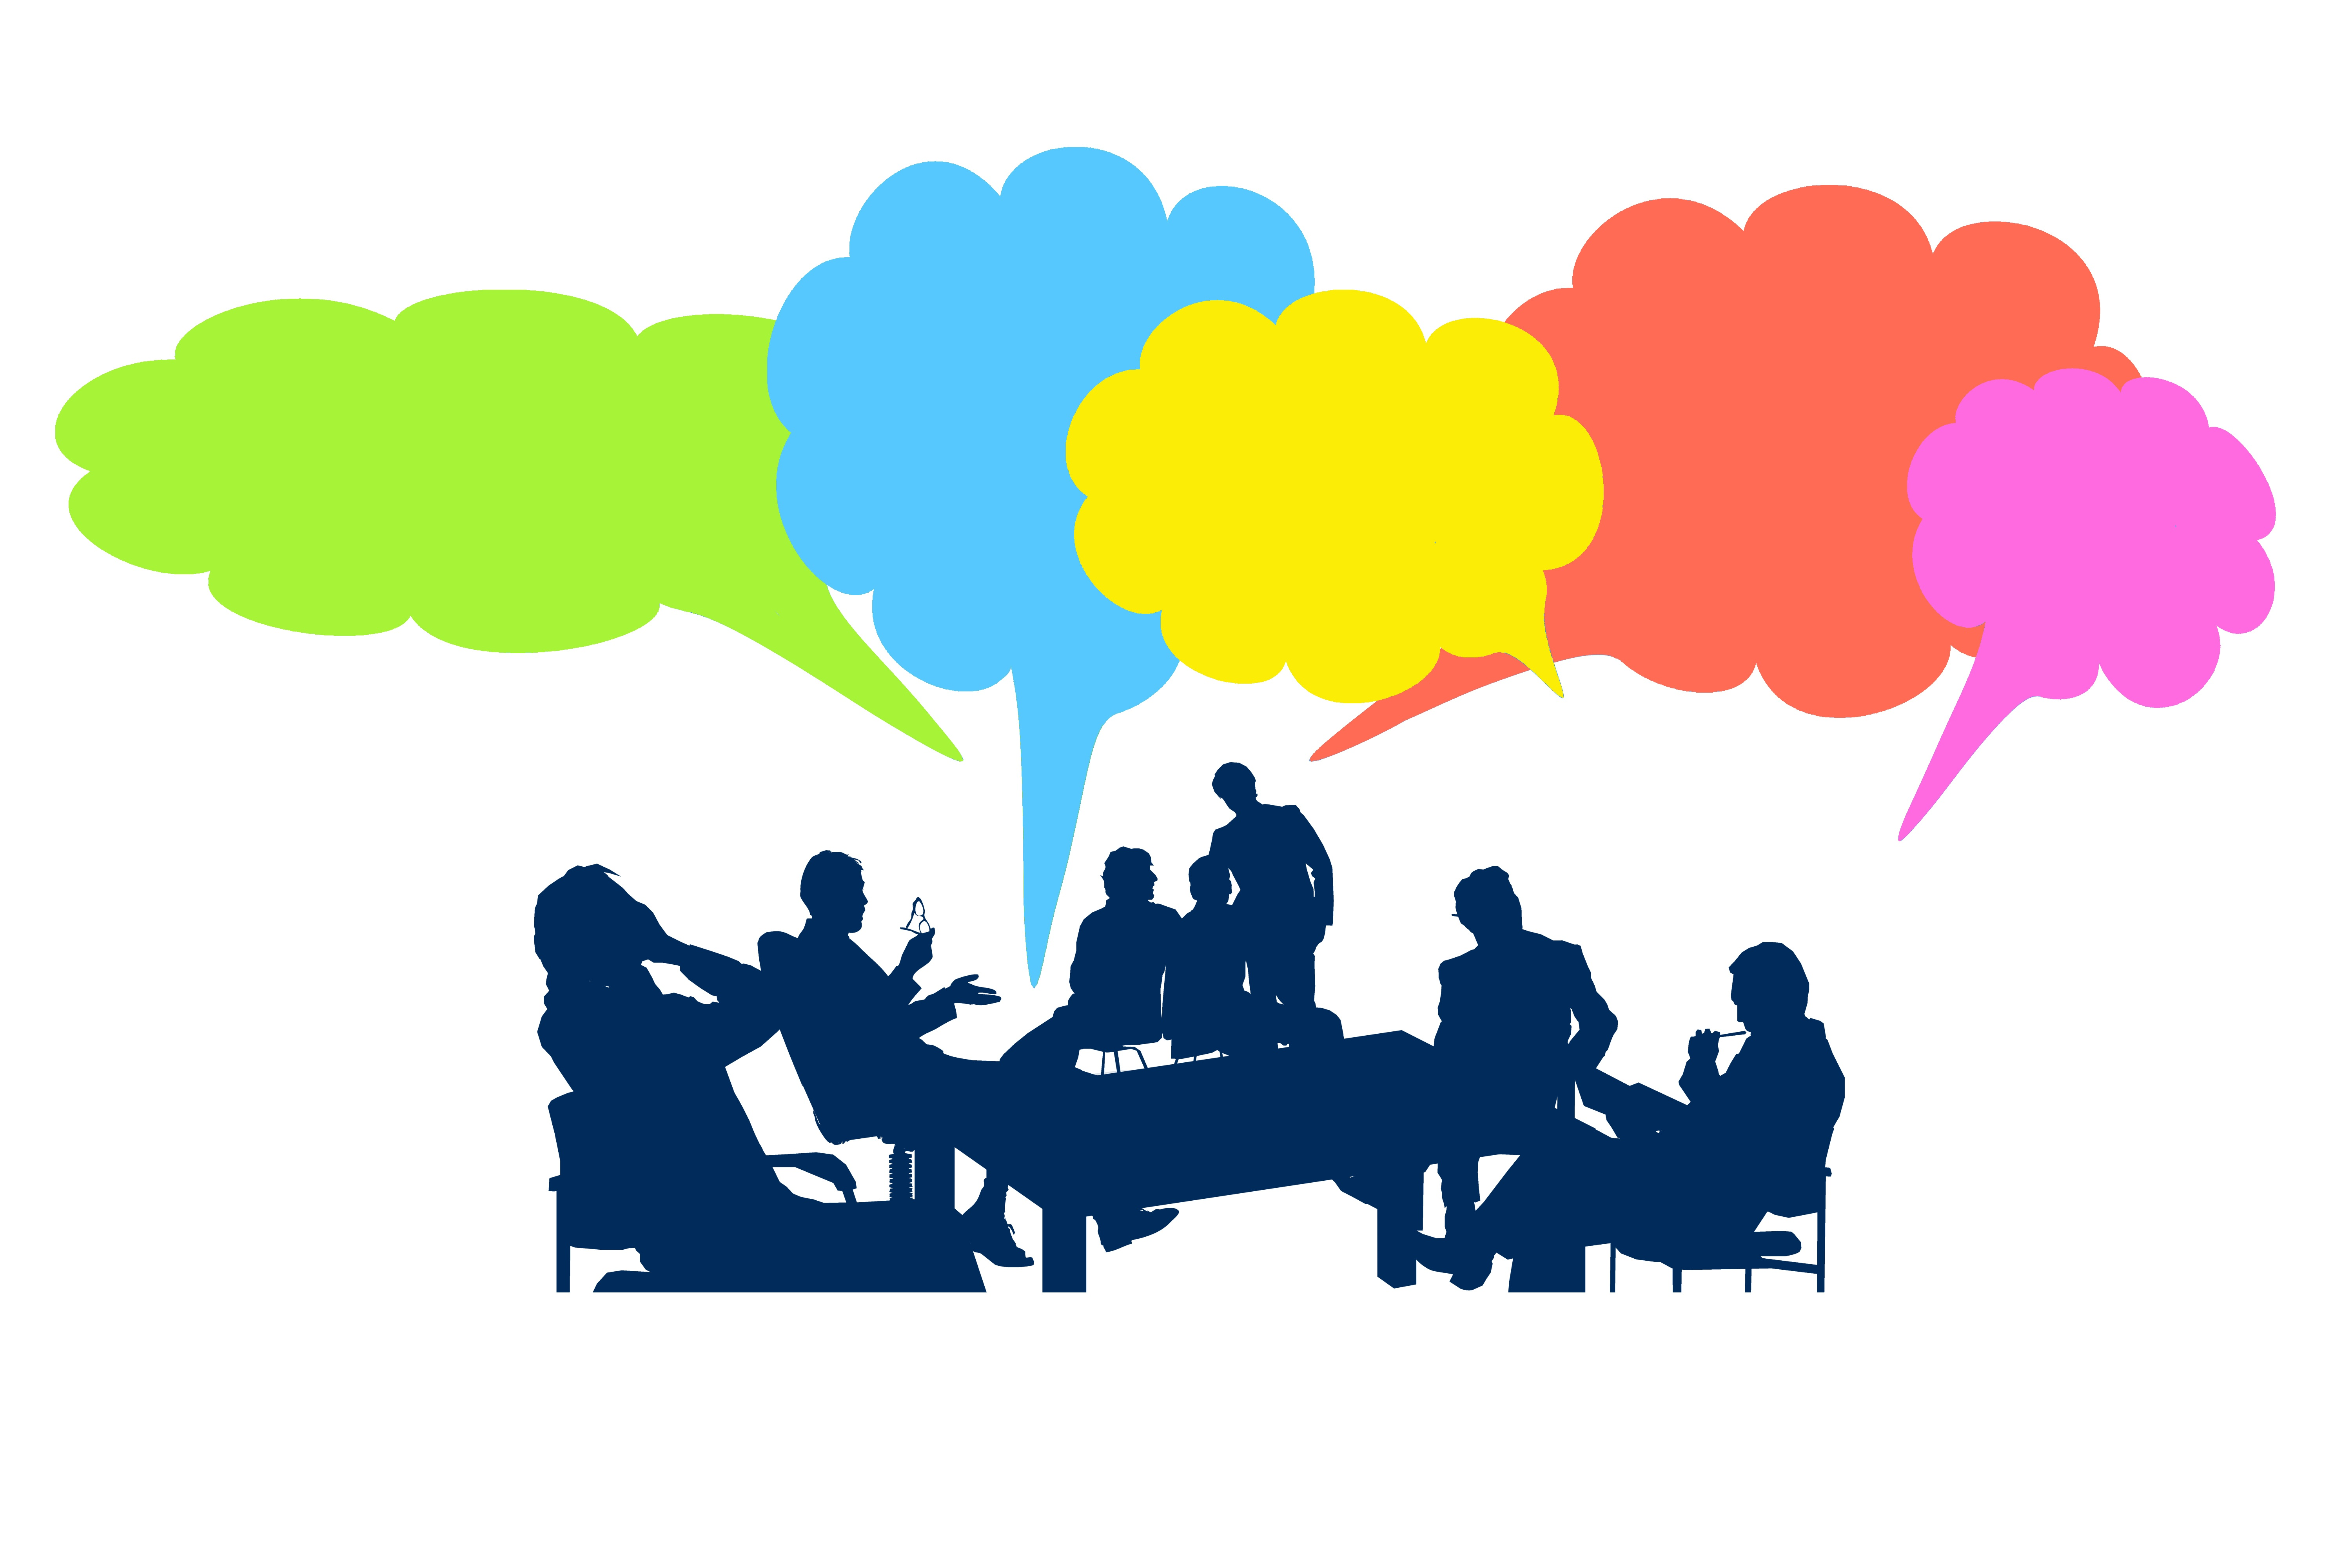 Outline image showing a group of people in silhouette seated around a table. Above their heads are five 'thought bubbles' in bright colours.